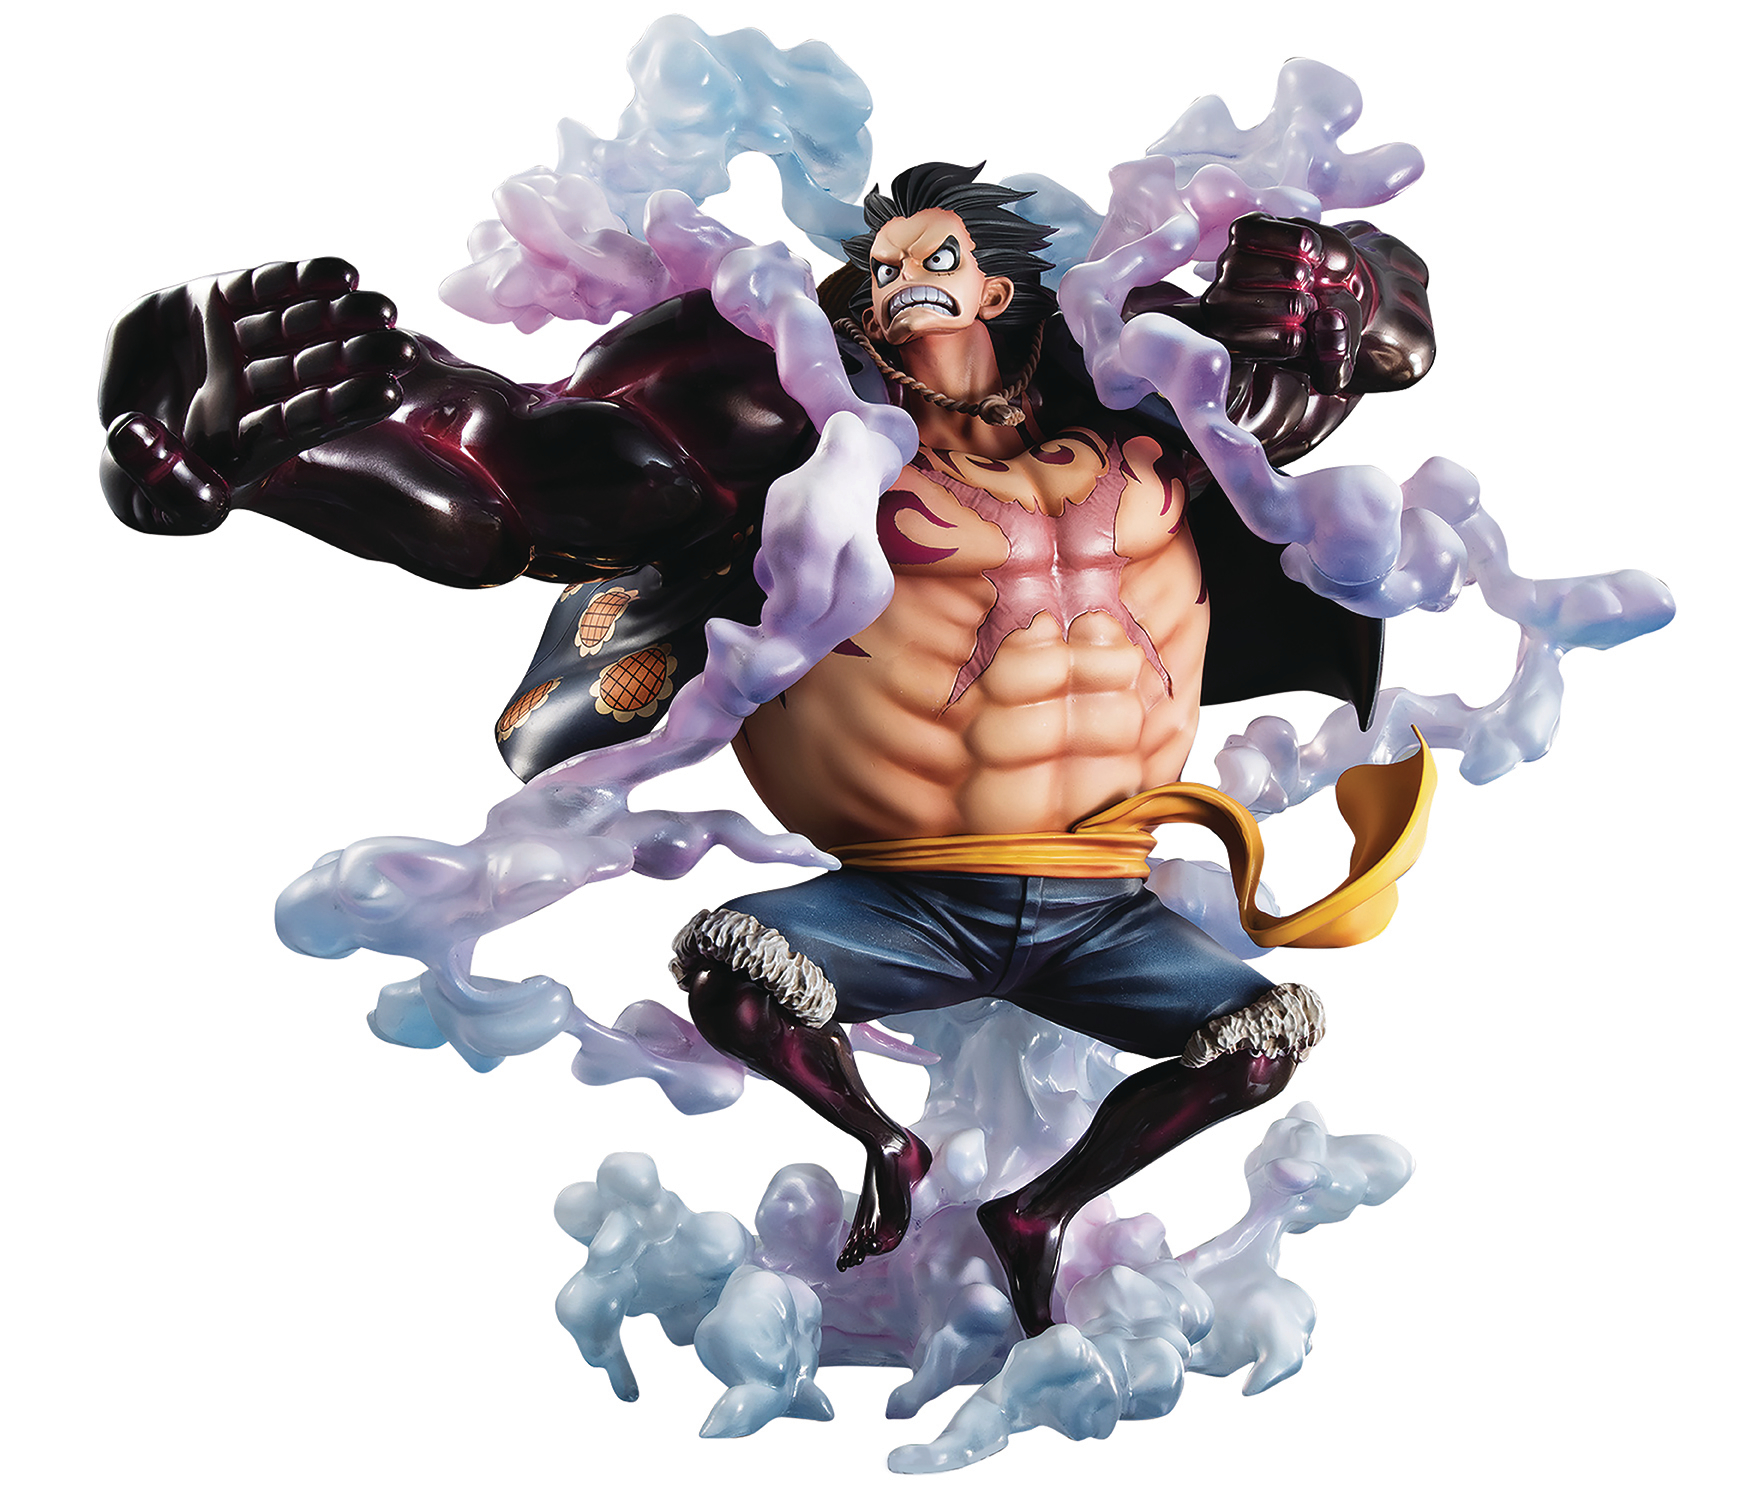 It was there they drew up what the next gear fourth form. Luffy Gear 4 Forms